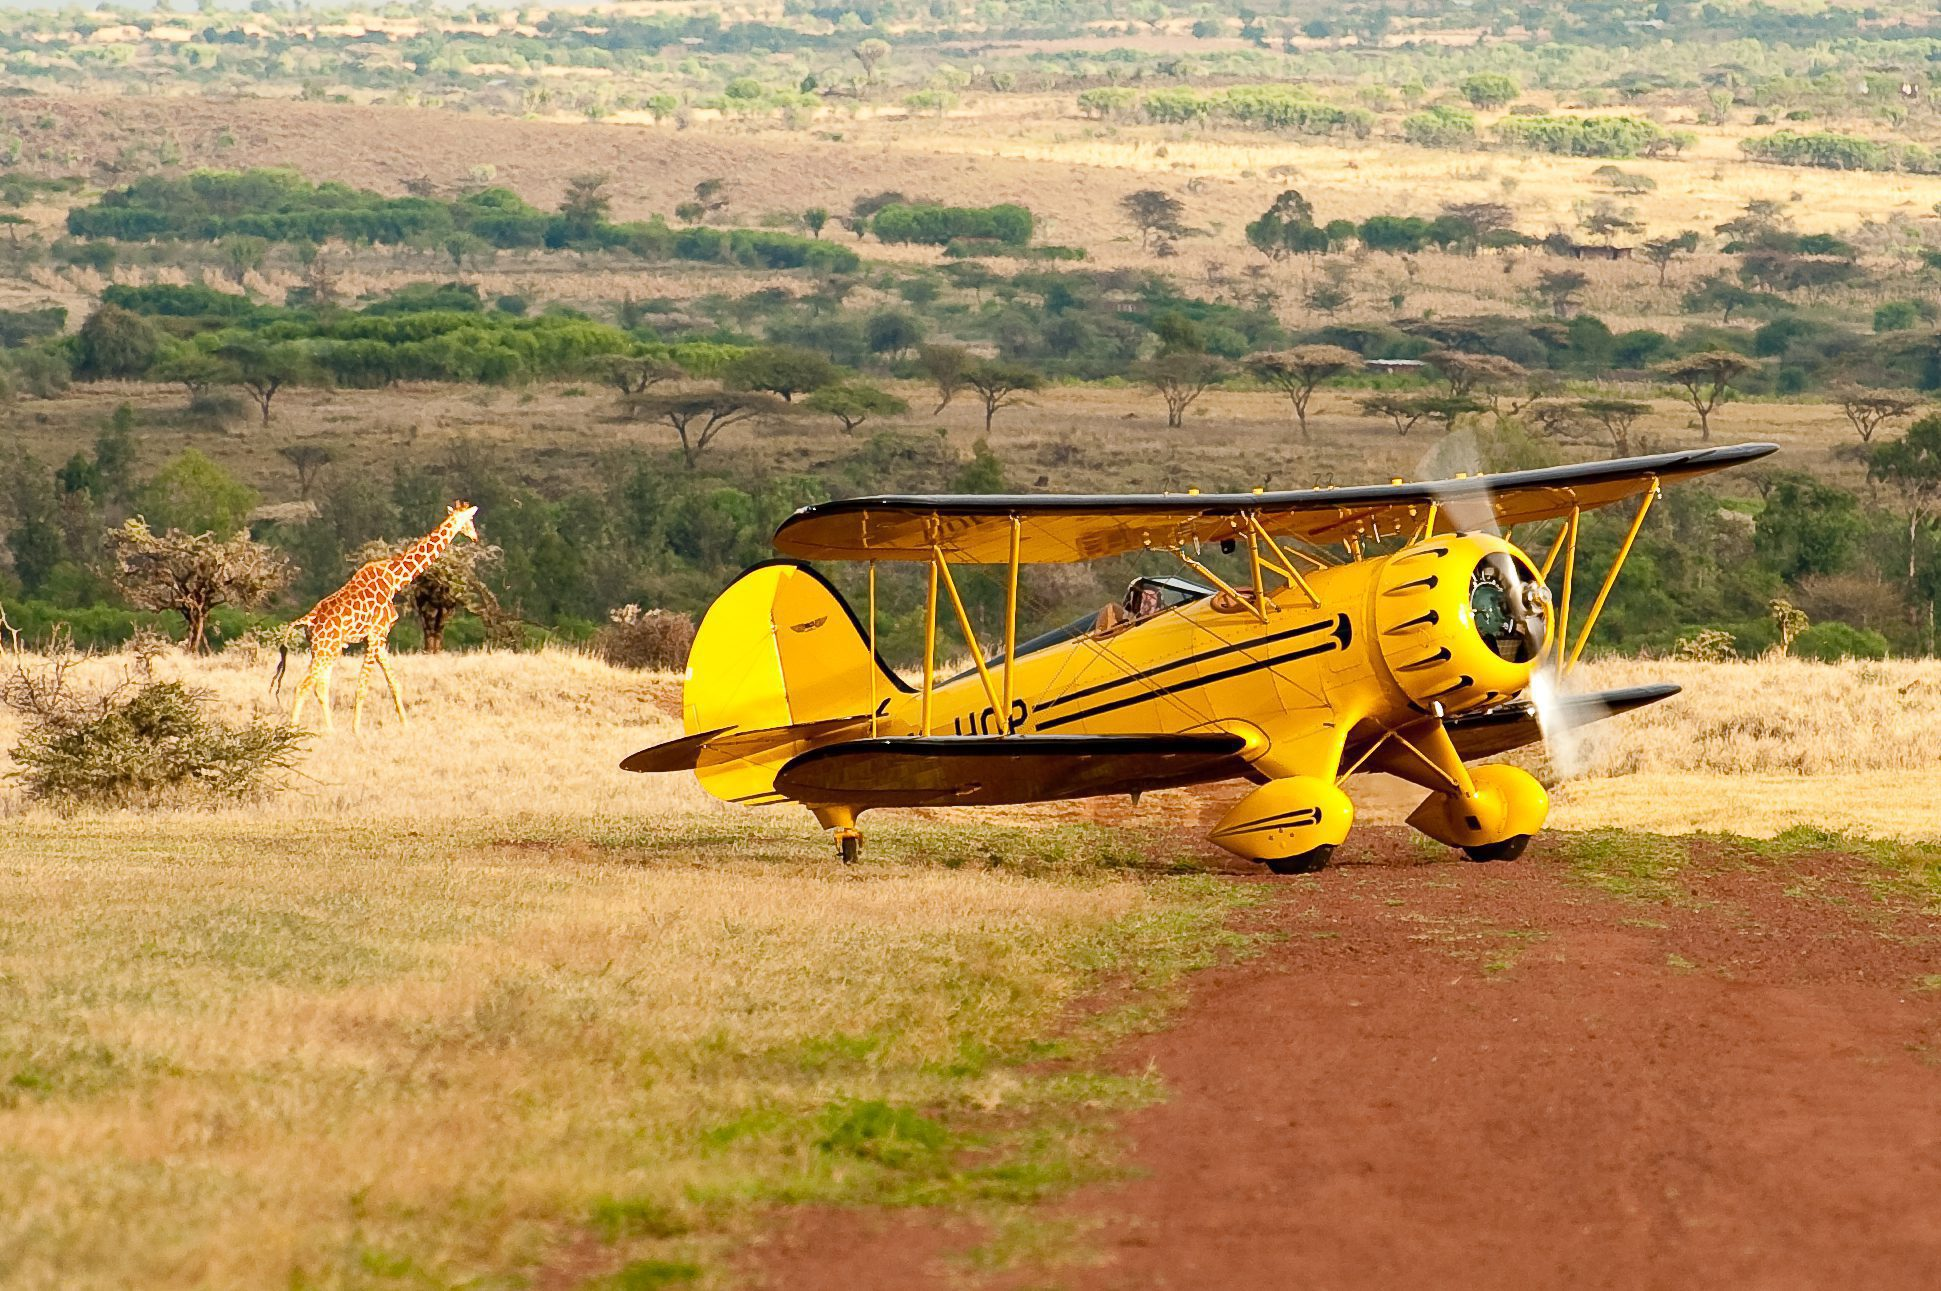 yellow biplane on the runway in Lewa, Kenya